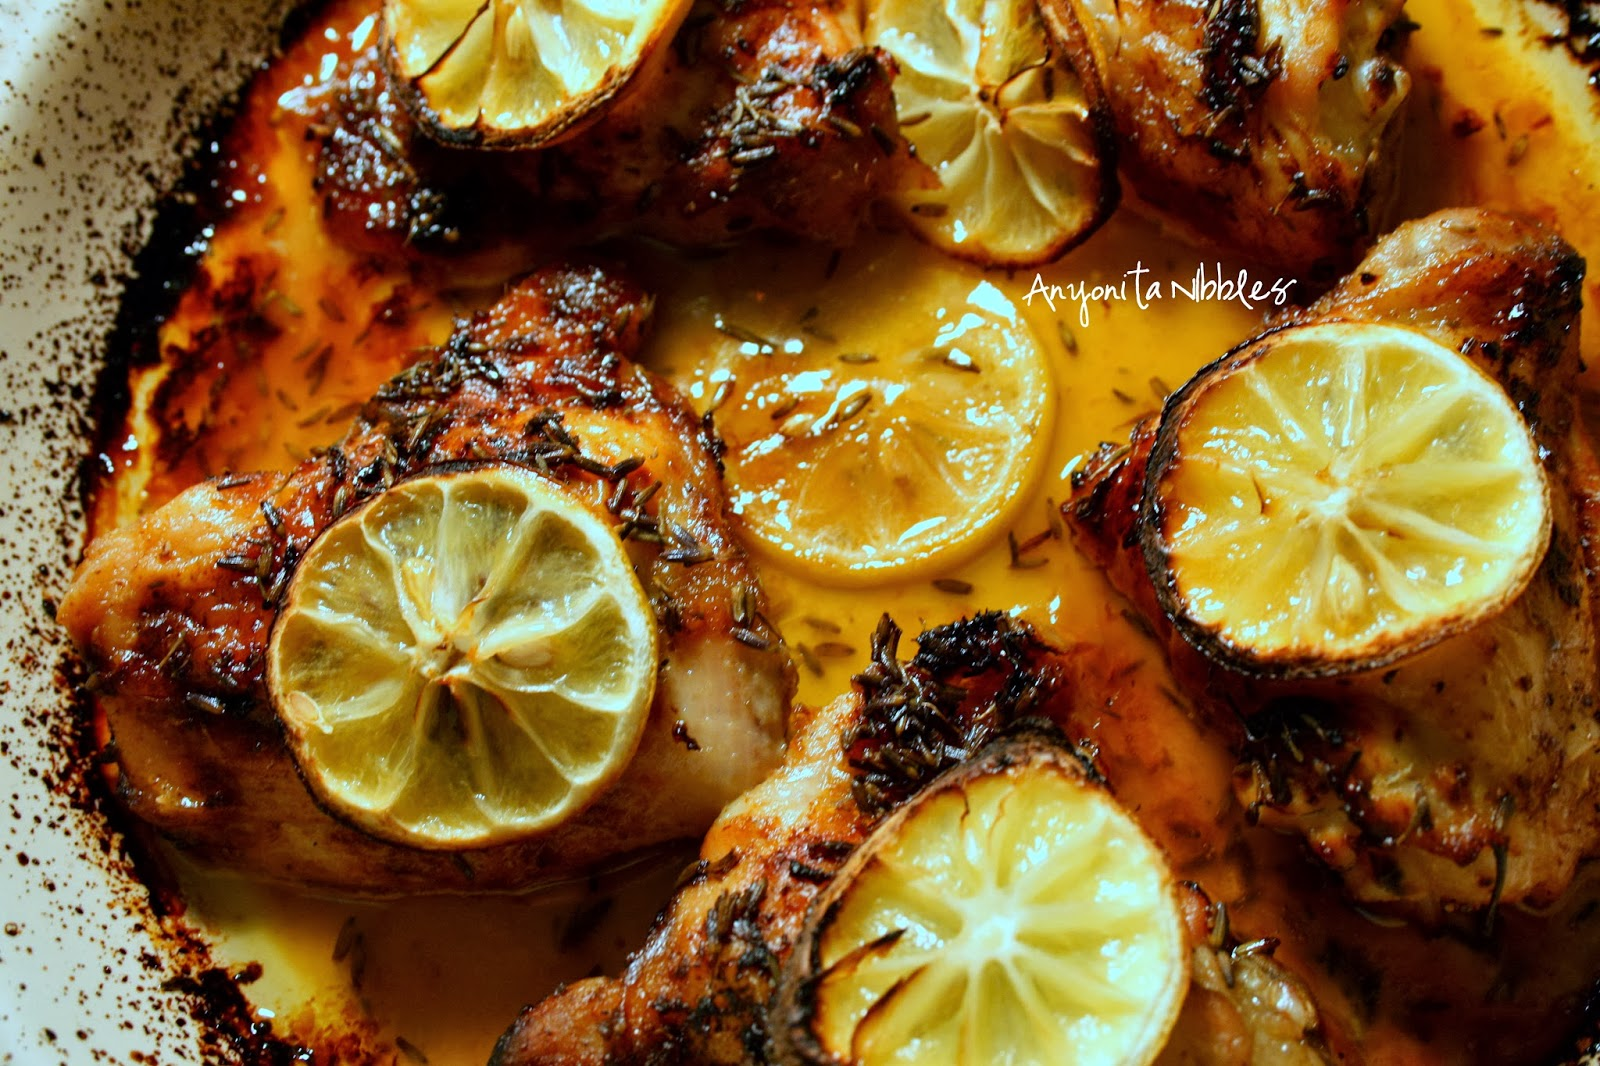 A tray of succulent and juicy lemon and lavender oven chicken | Anyonita Nibbles